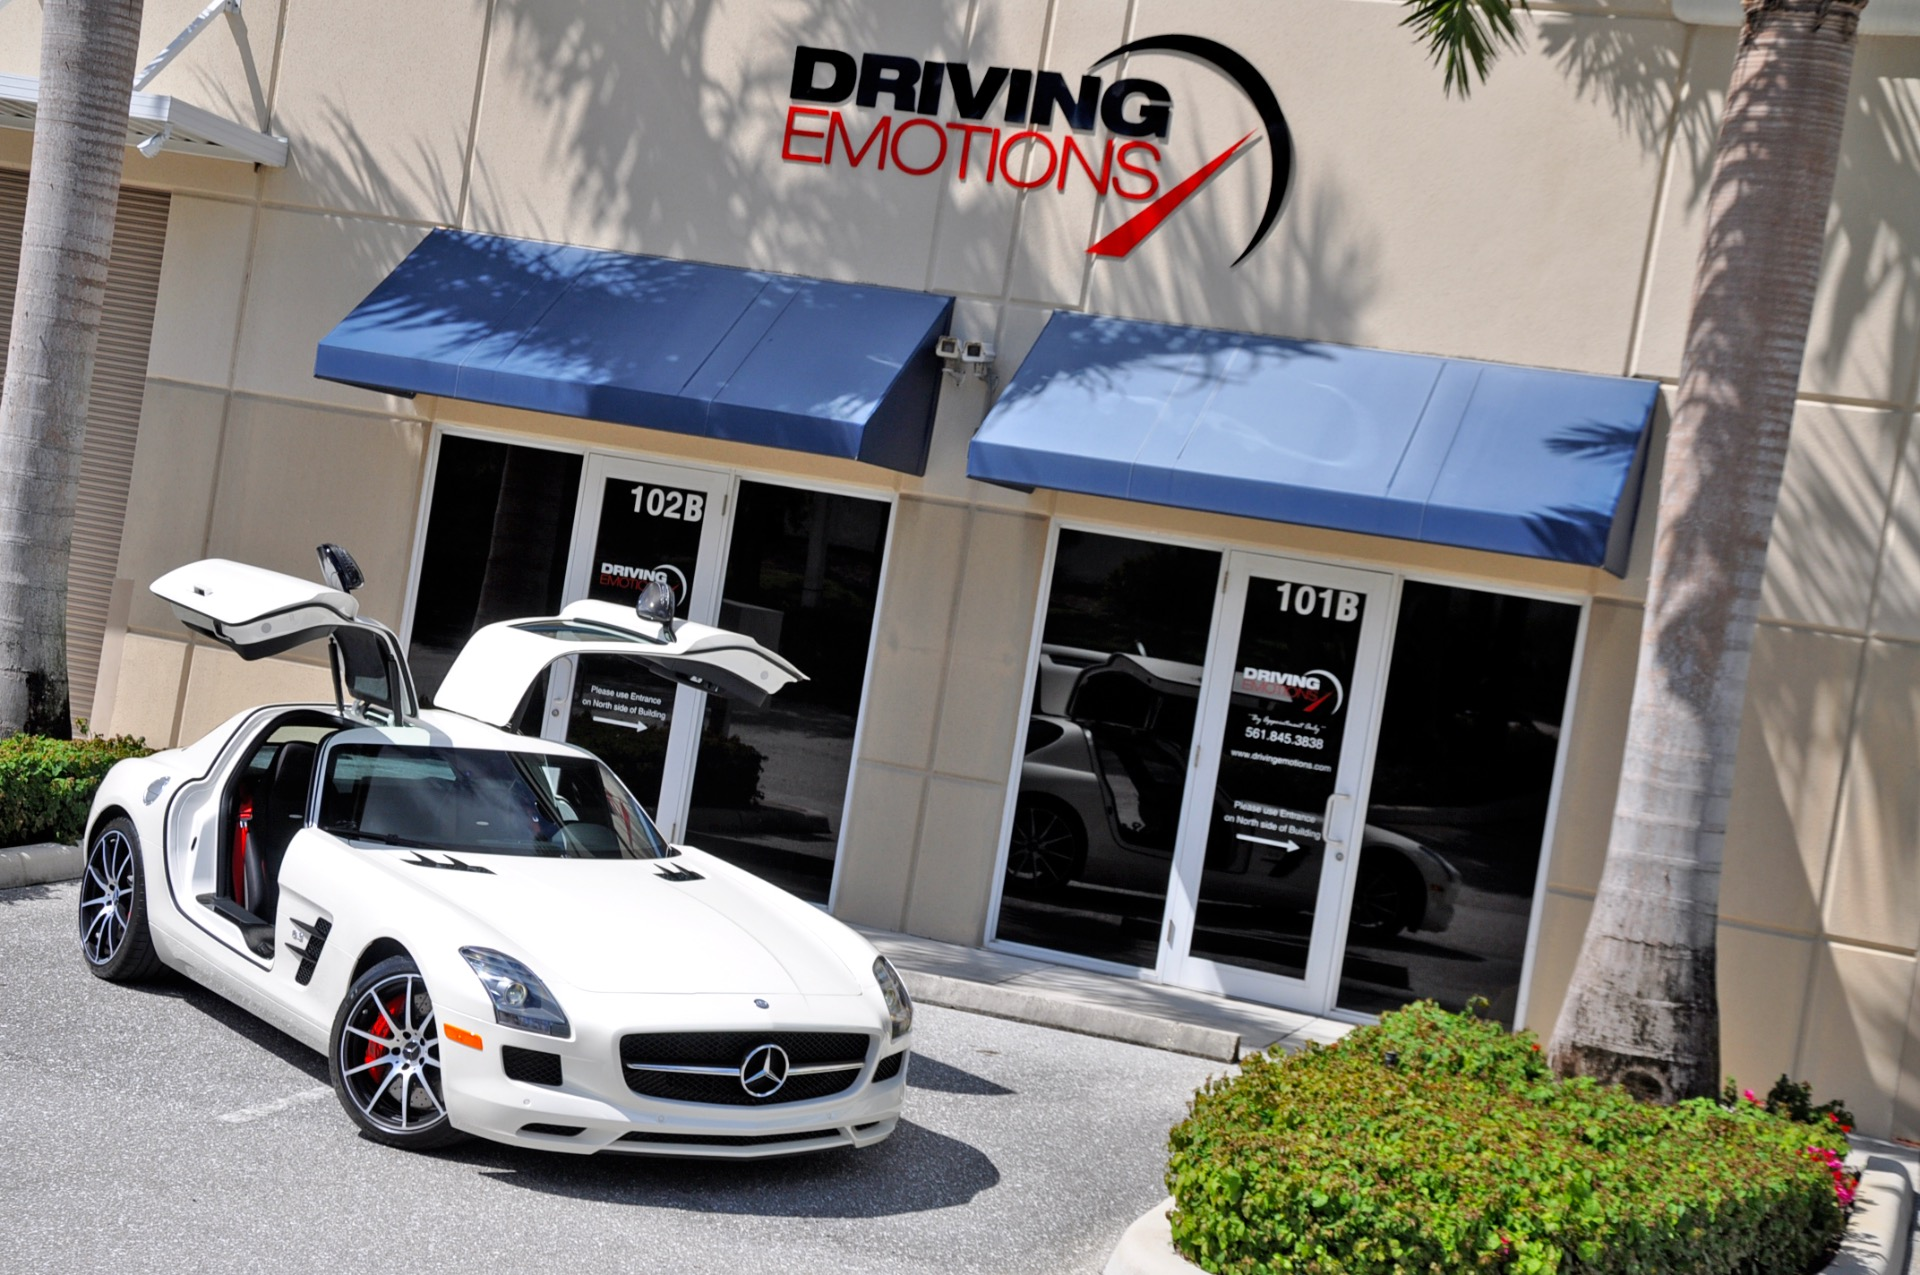 2013 mercedes benz sls amg gt gullwing coupe stock 5902 for sale near lake park fl fl. Black Bedroom Furniture Sets. Home Design Ideas